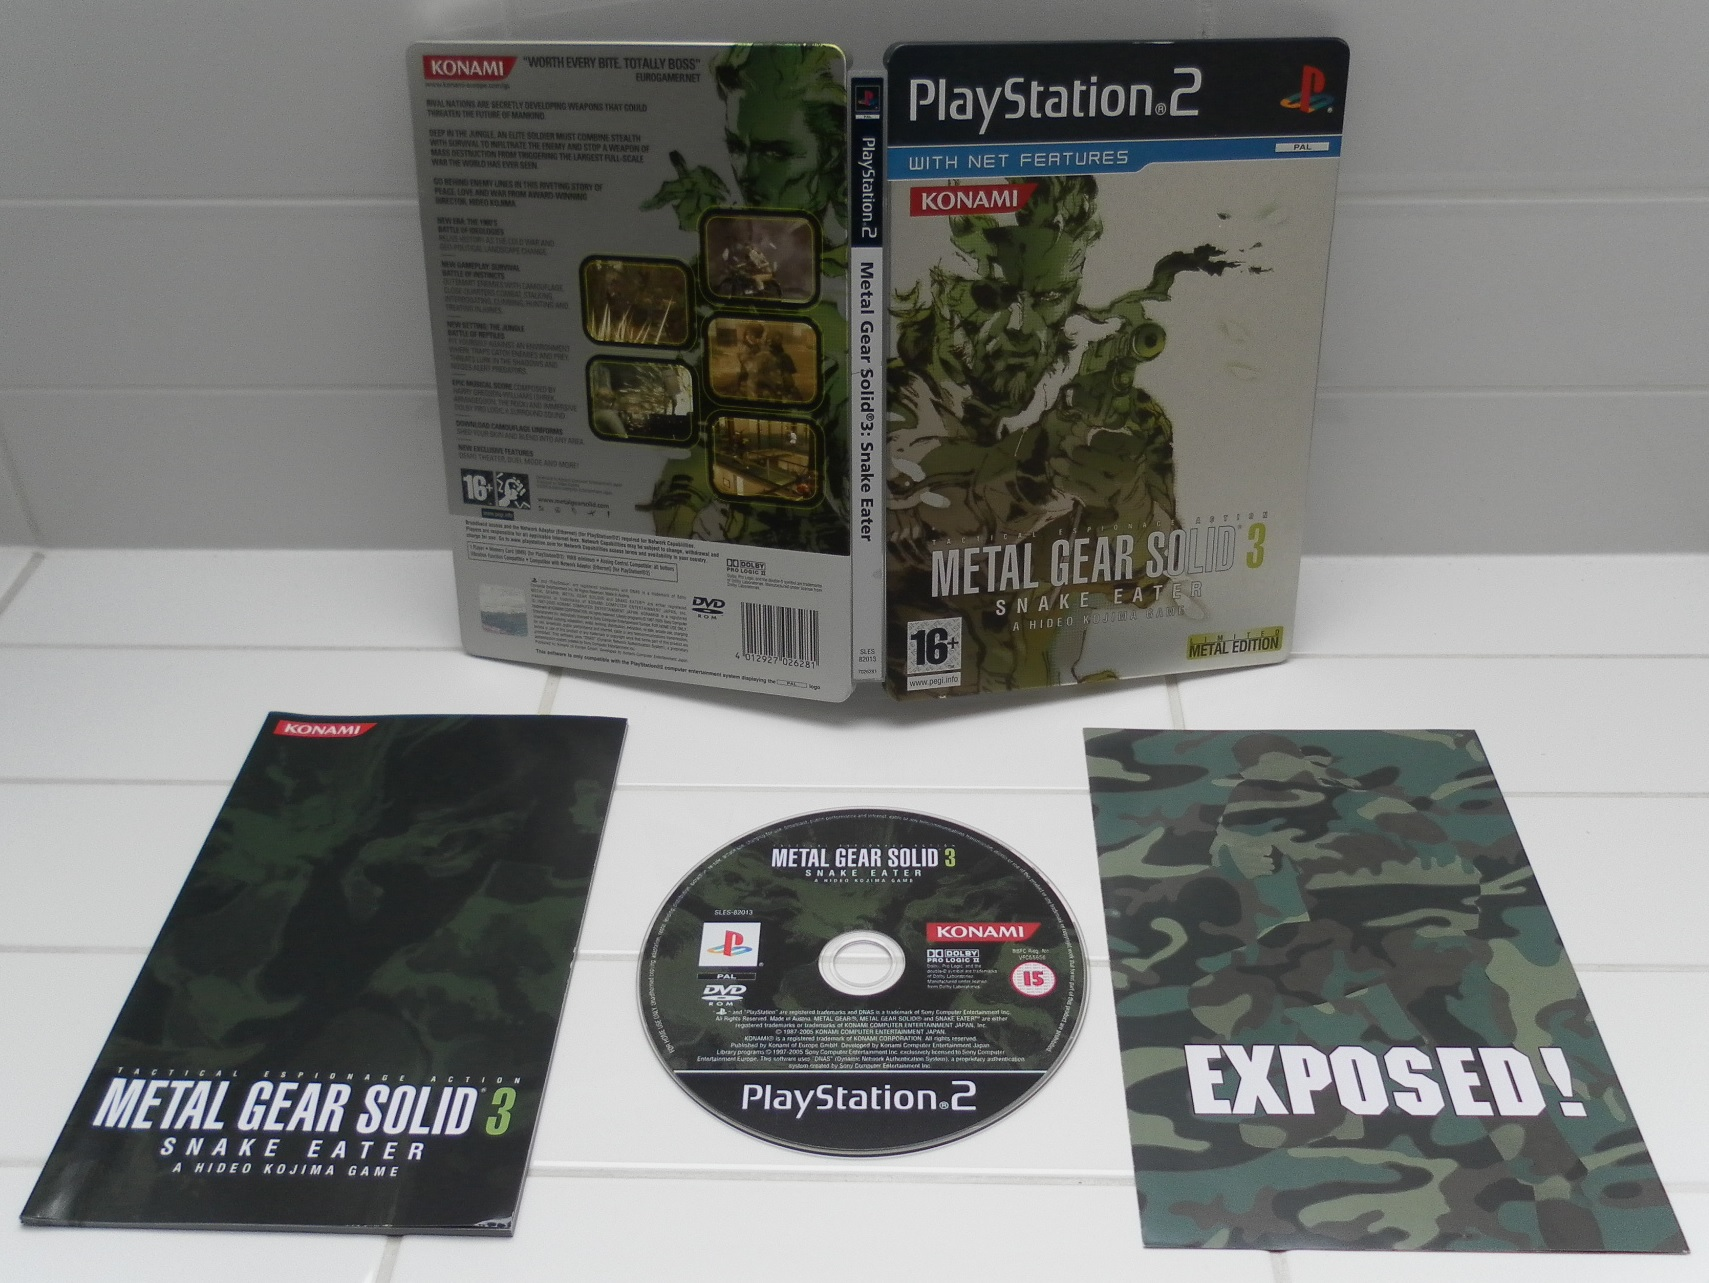 Metal Gear Solid 3 Steelbook